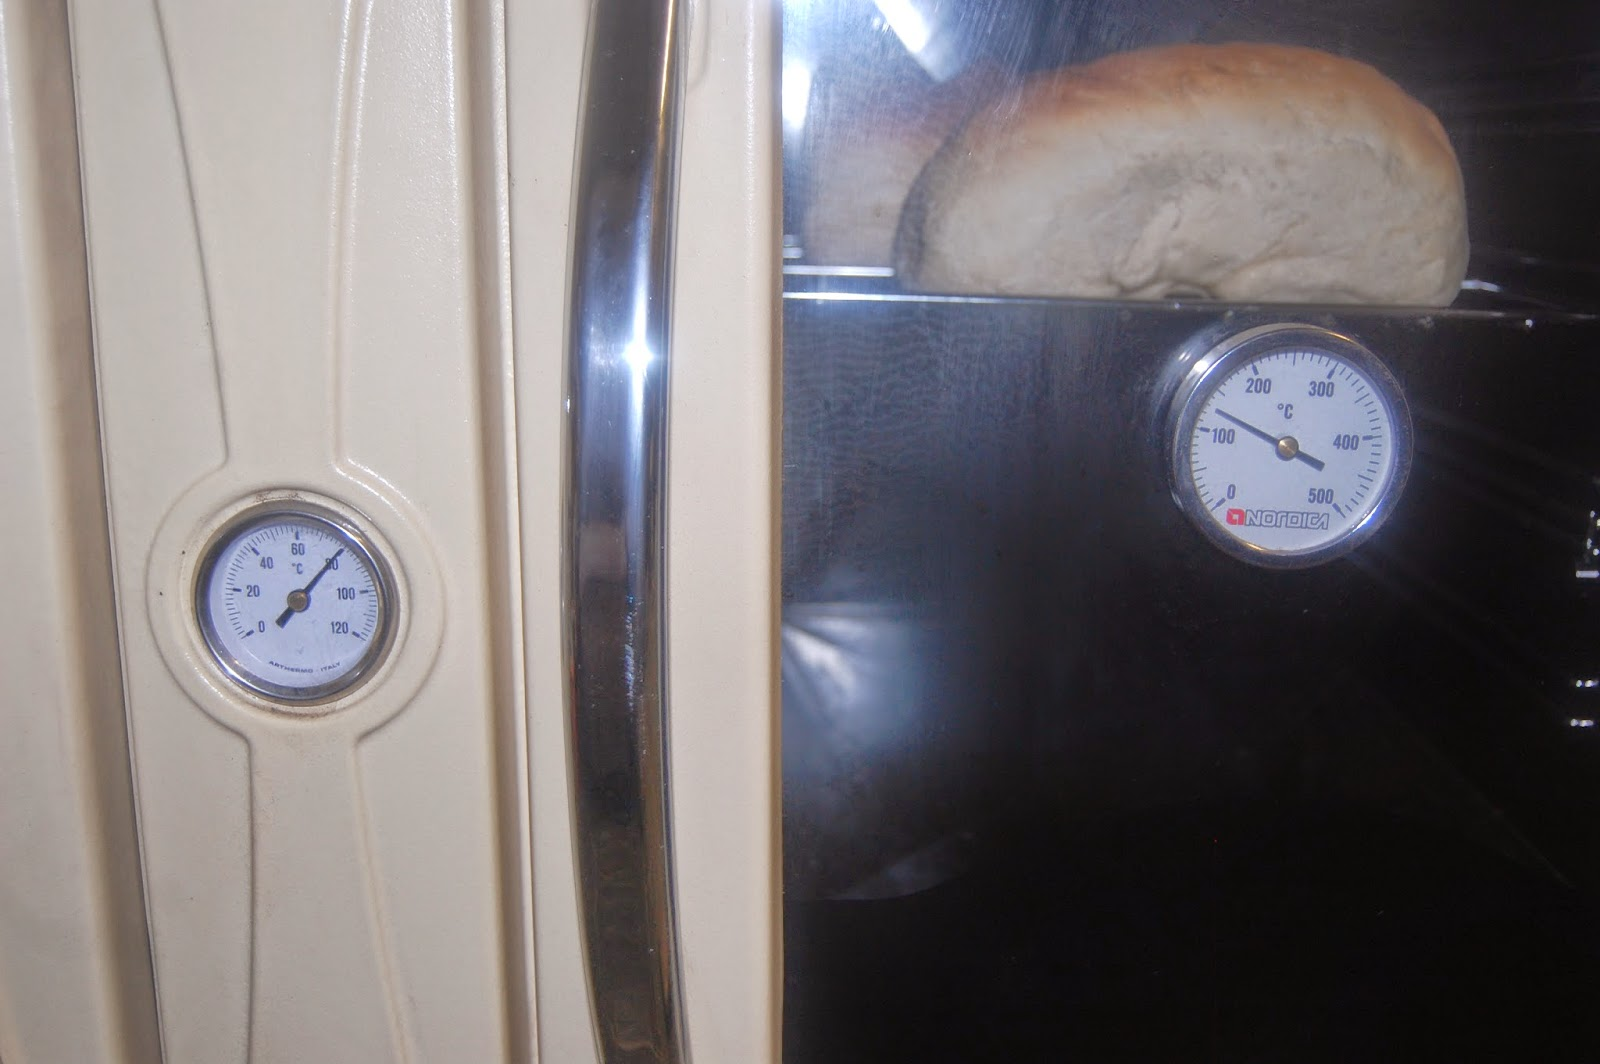 Using a Broseley Thermo Suprema to bake #lifeonpigrow